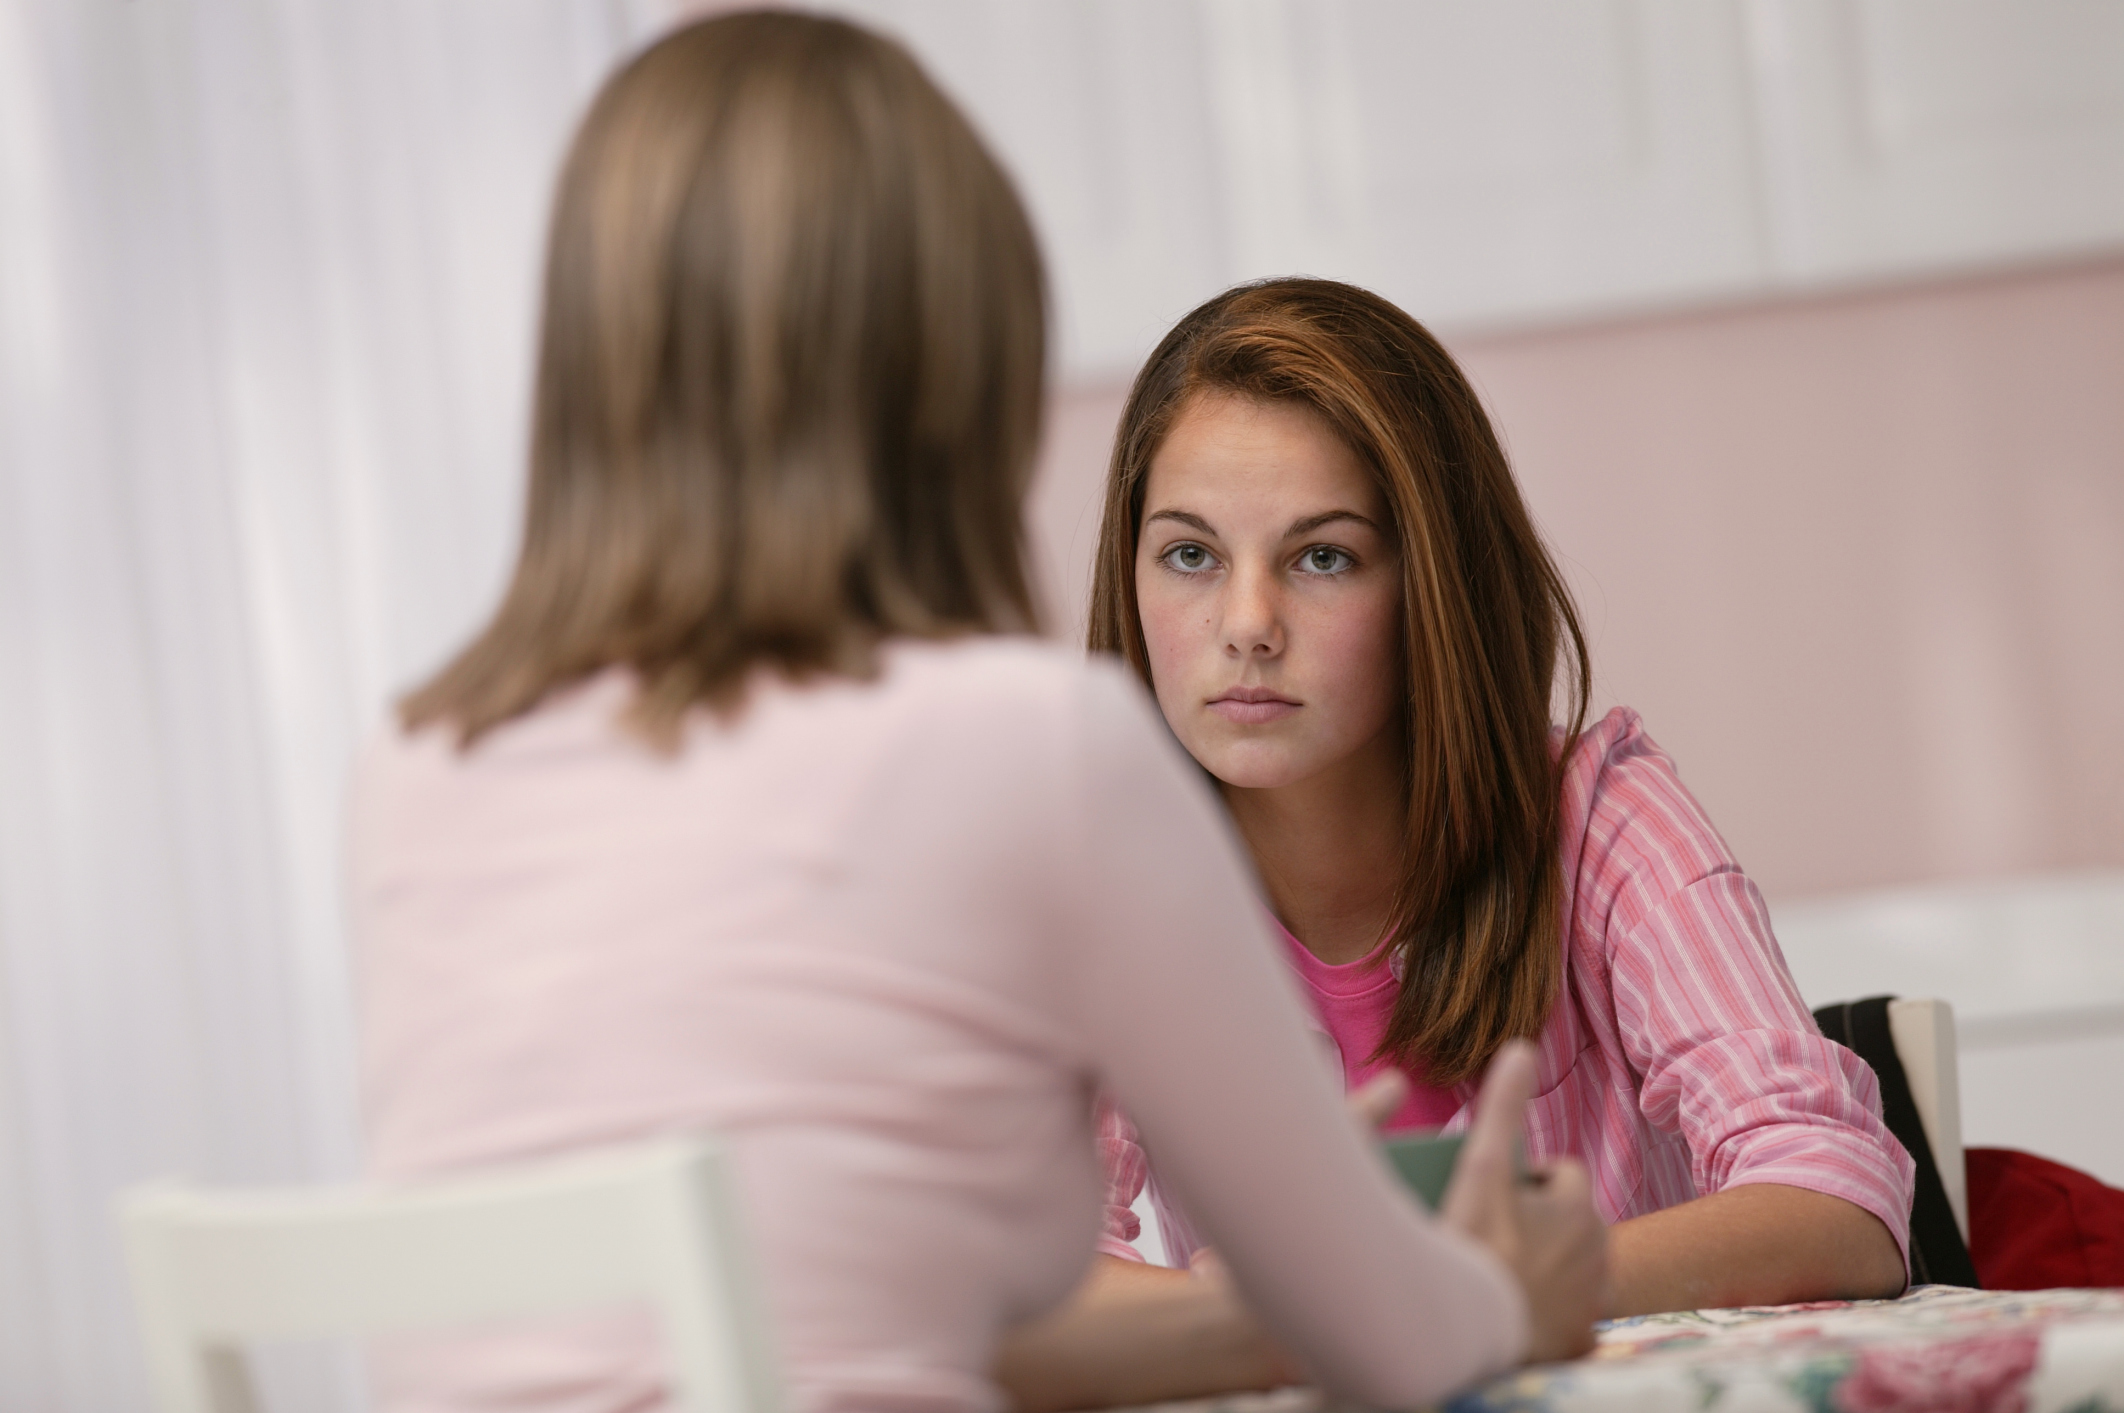 How to talk to teens about drug use